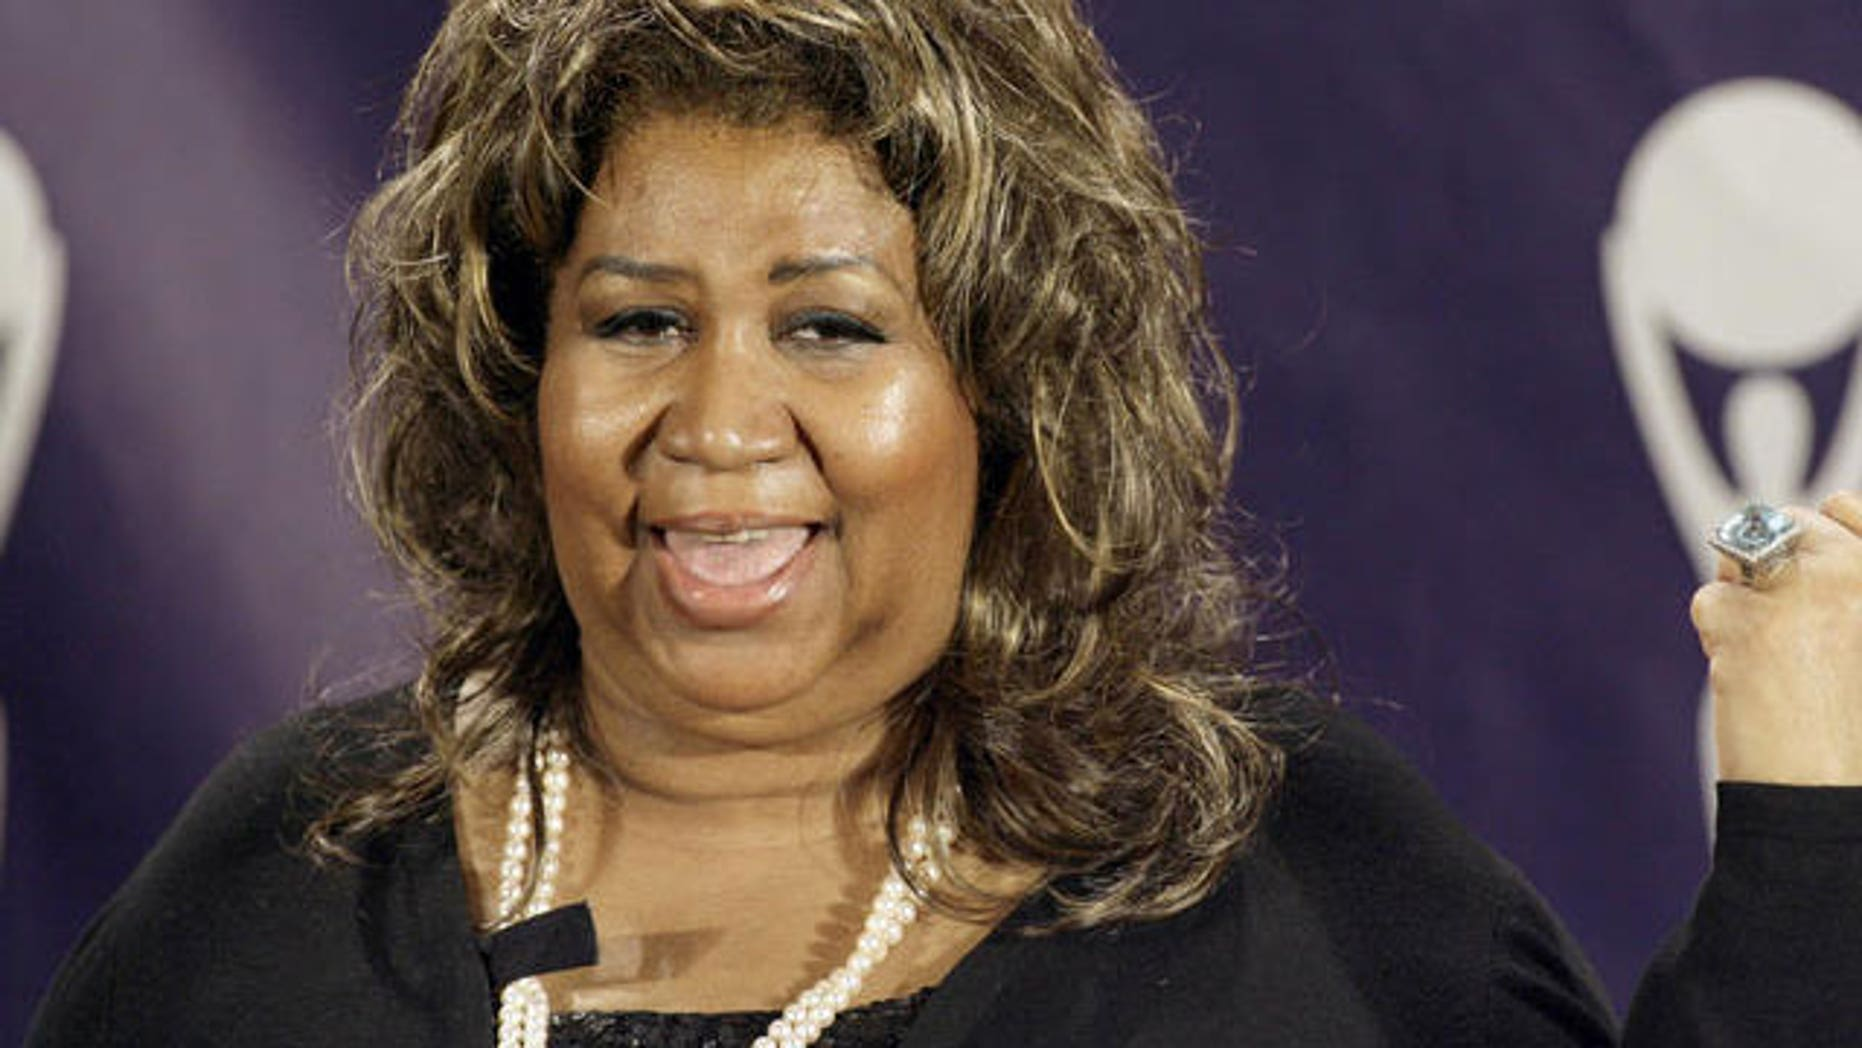 Aretha Franklin has canceled all appearances through May after hospitalization.